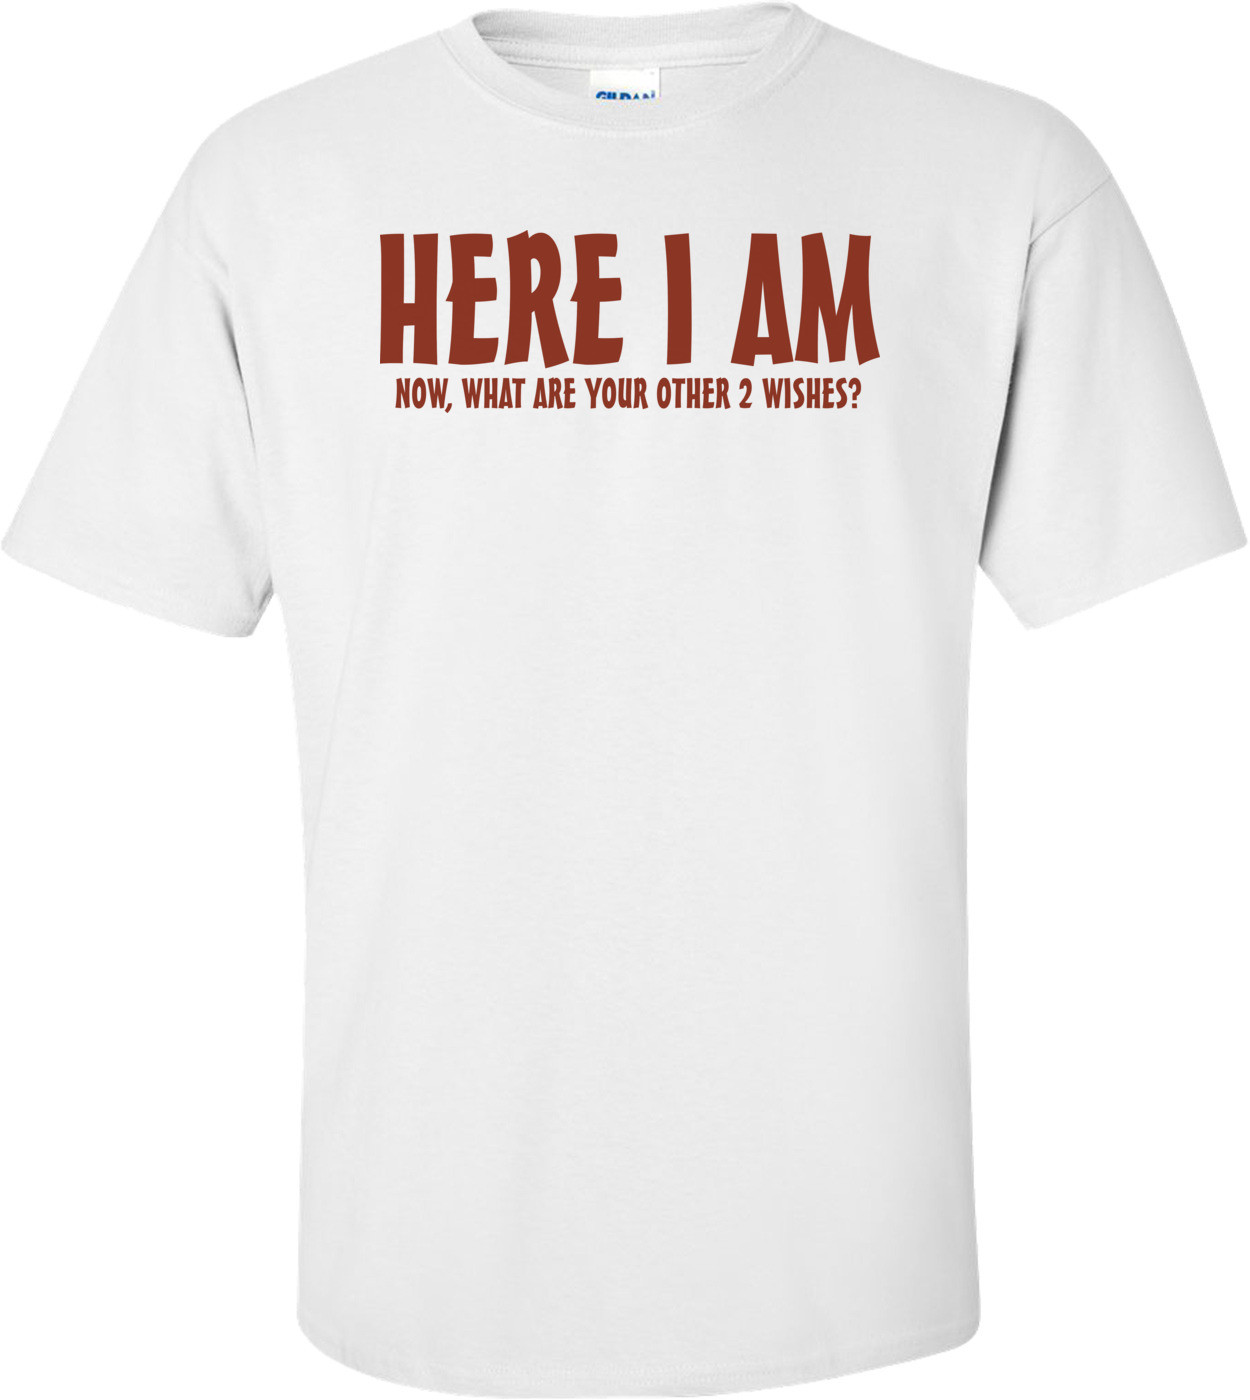 Here I Am Now What Are Your Other 2 Wishes T-shirt